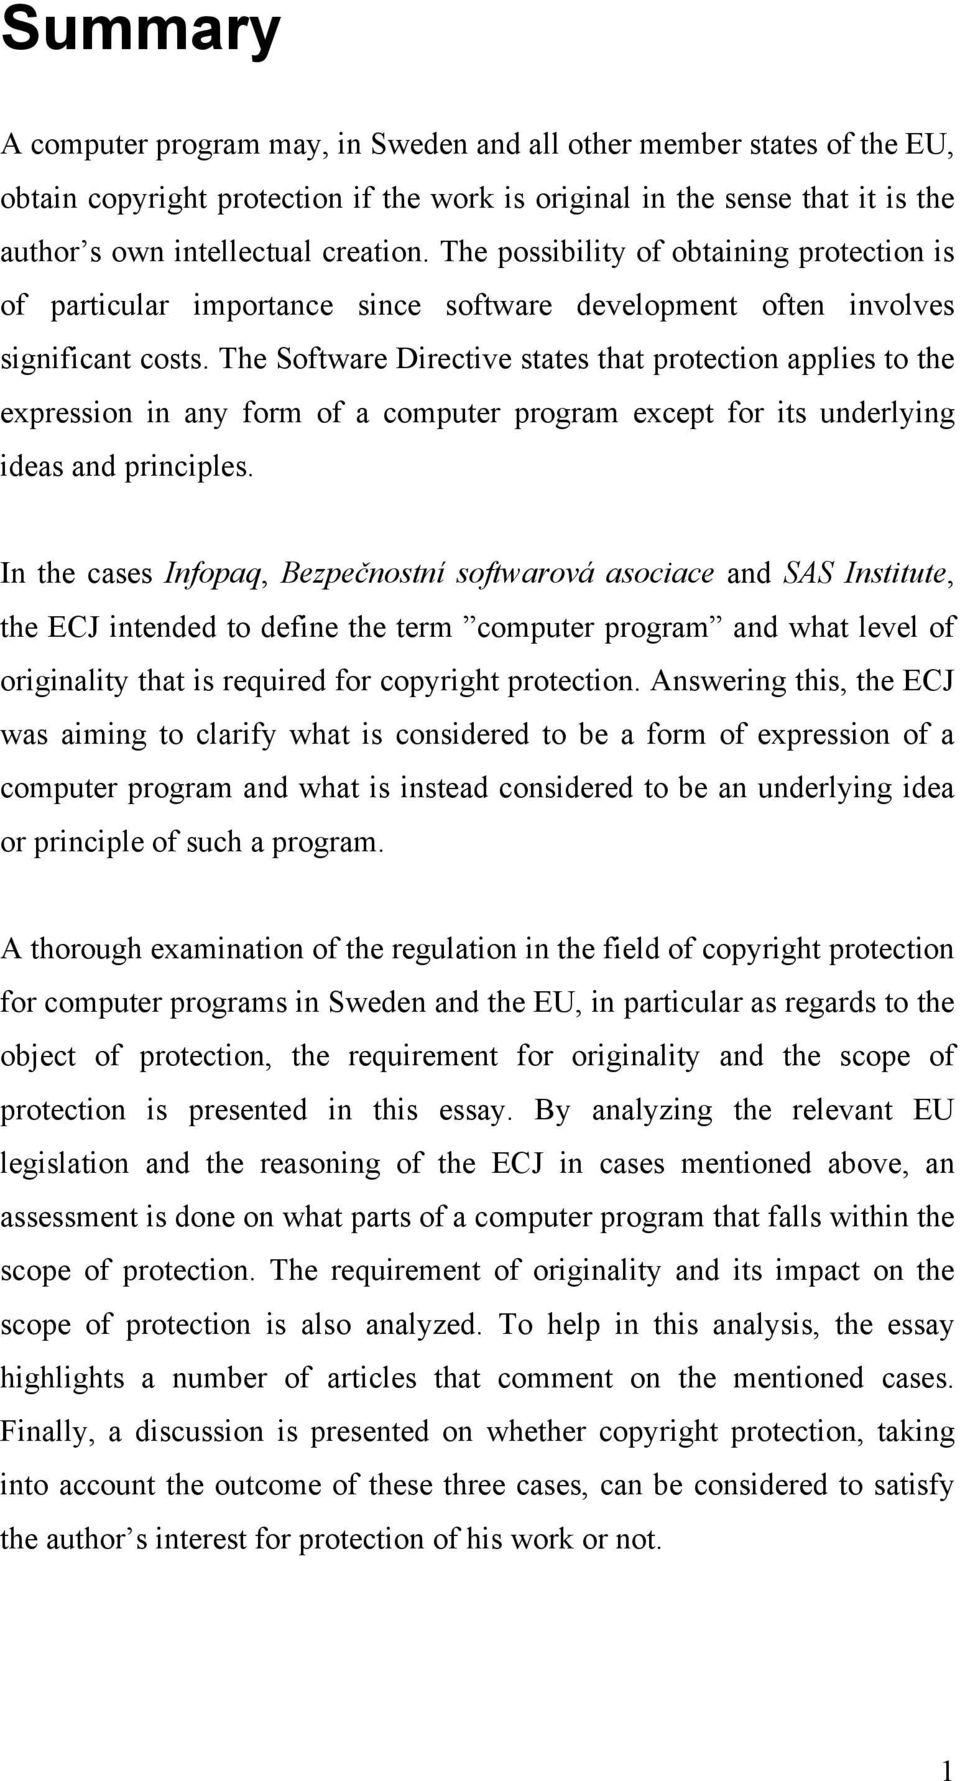 The Software Directive states that protection applies to the expression in any form of a computer program except for its underlying ideas and principles.